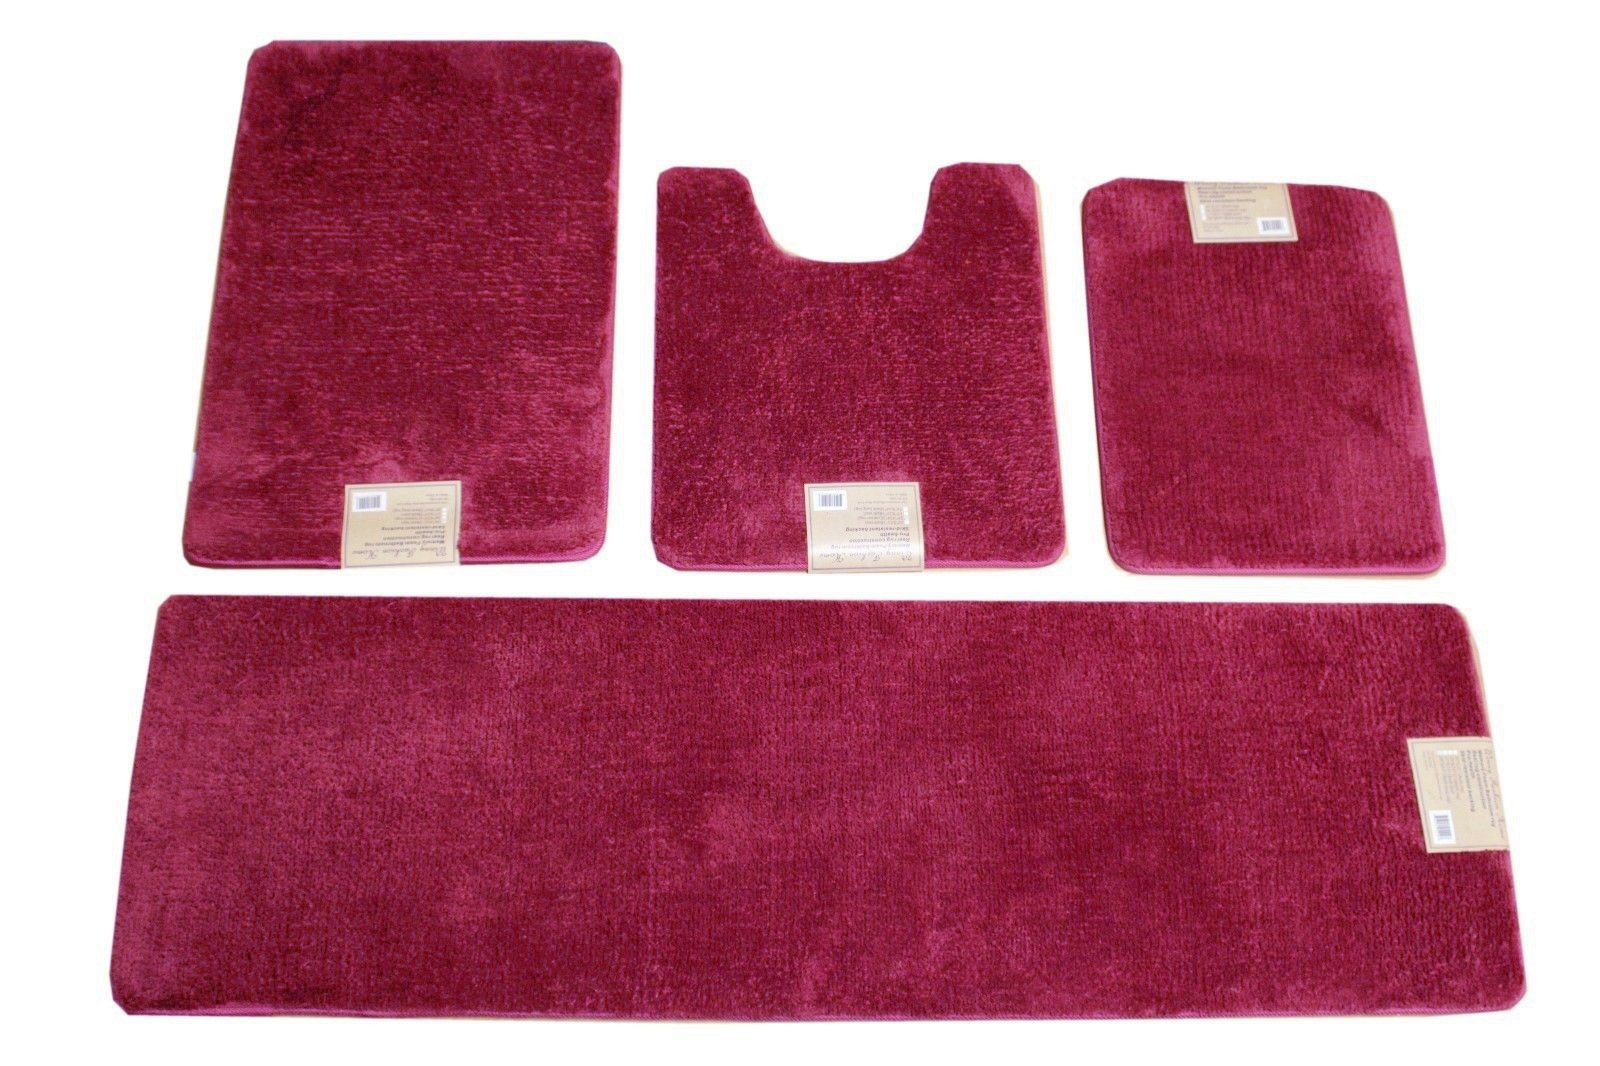 4 Piece Full Set Luxury Solid Color Extra Long Memory Foam Bathmats (17x23''/20x24''/20x32''/20x64'') (Cherry pink )